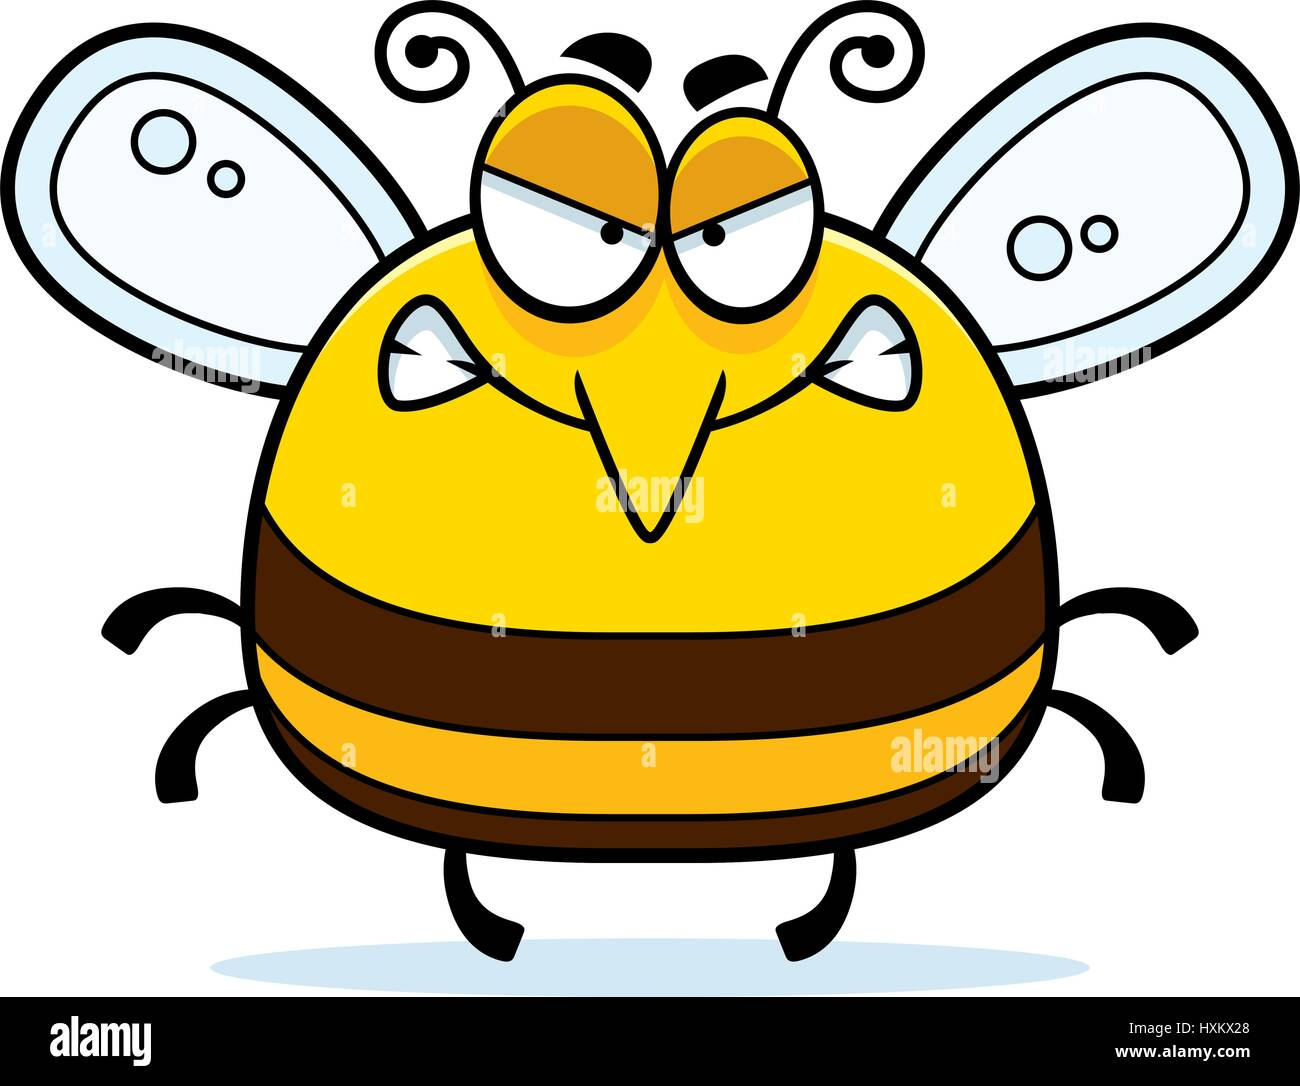 a cartoon illustration of a bee looking angry stock vector art